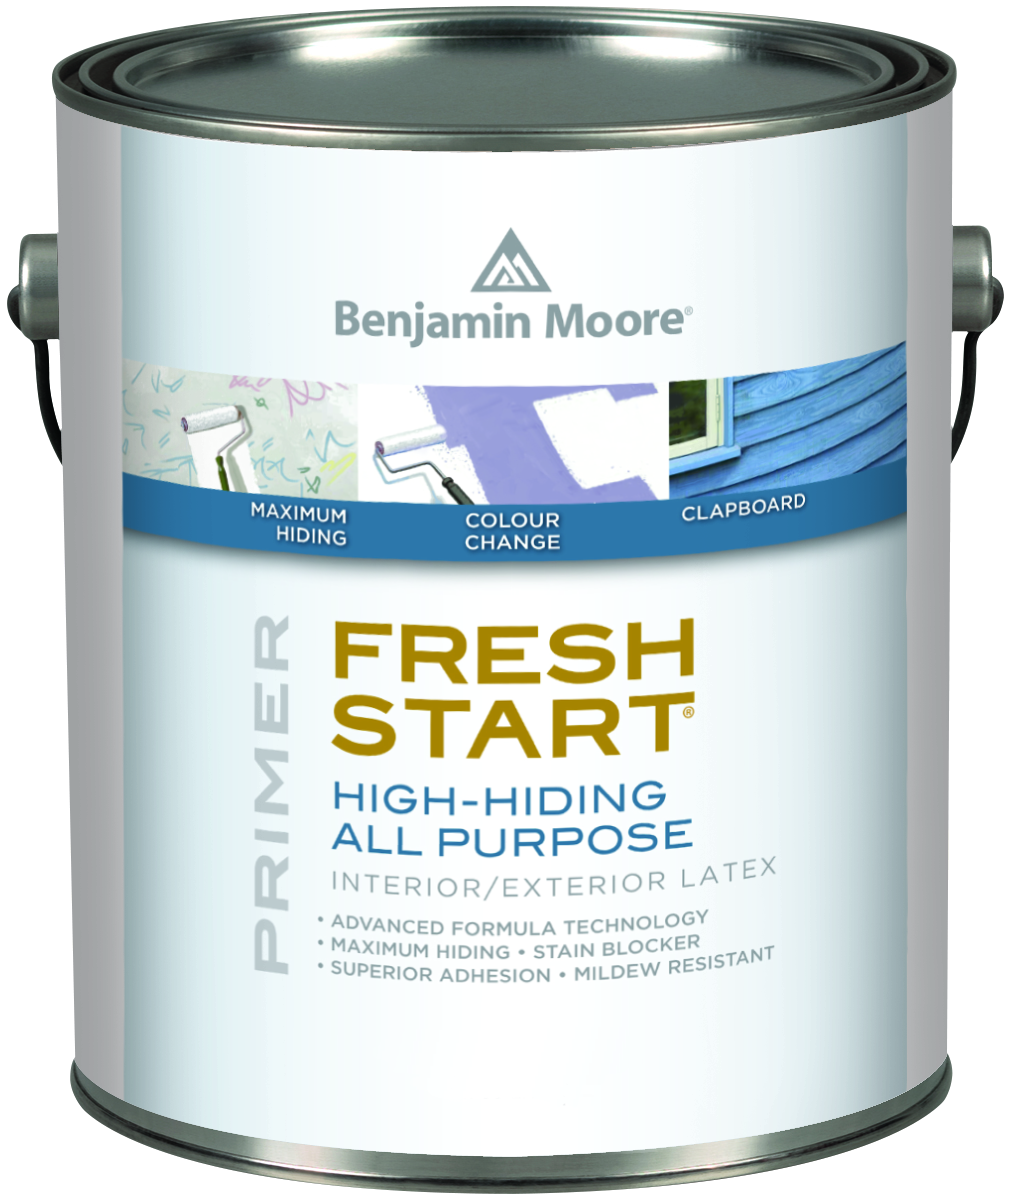 Benjamin moore paint wm dyck sons for Benjamin moore exterior paint with primer